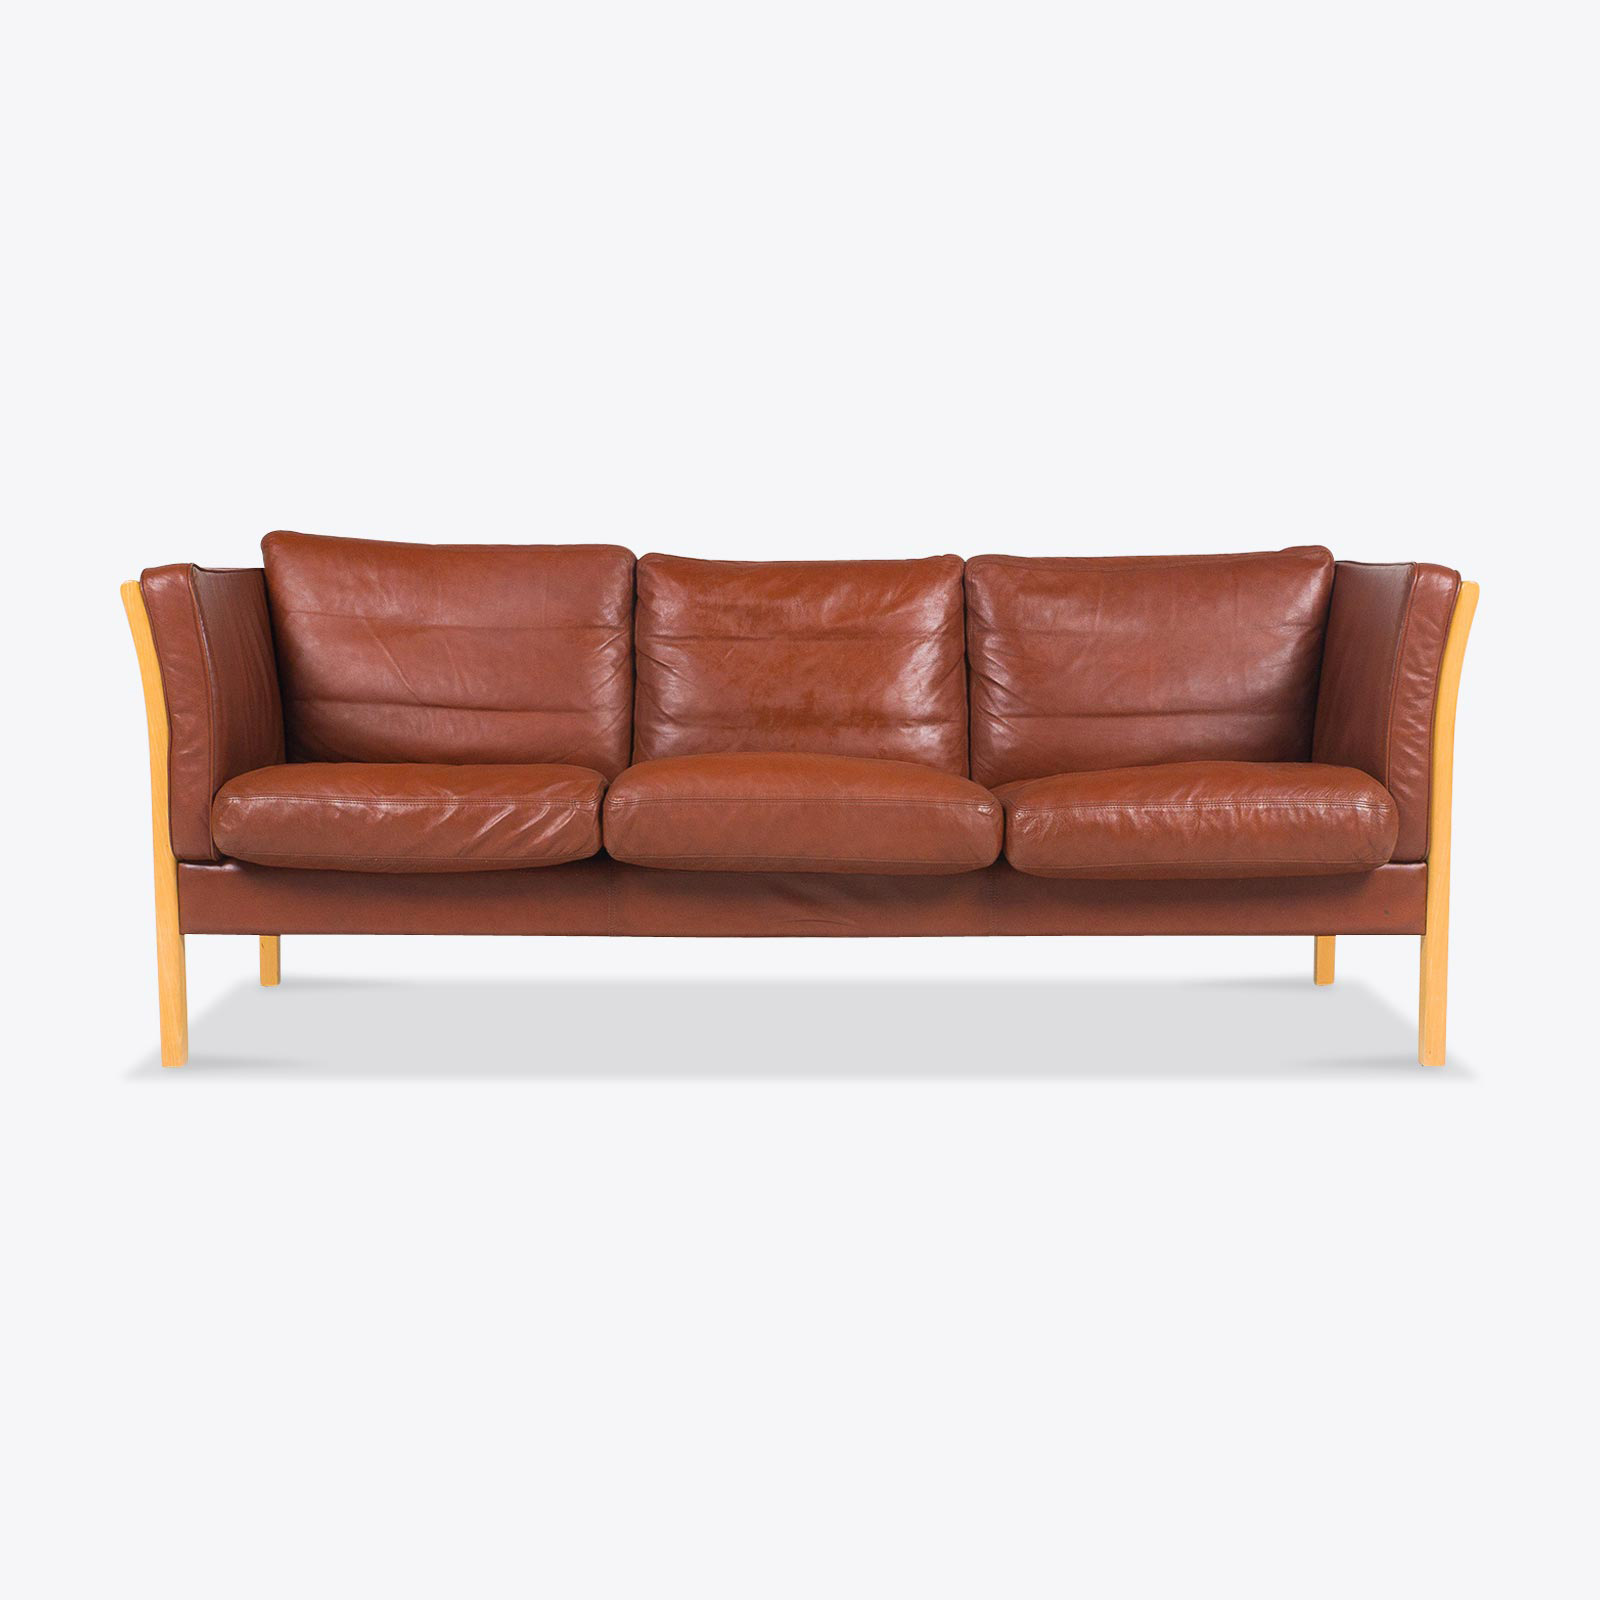 3 Seat Sofa In Rich Tan Leather With Beech Frame 1960s Denmark 01